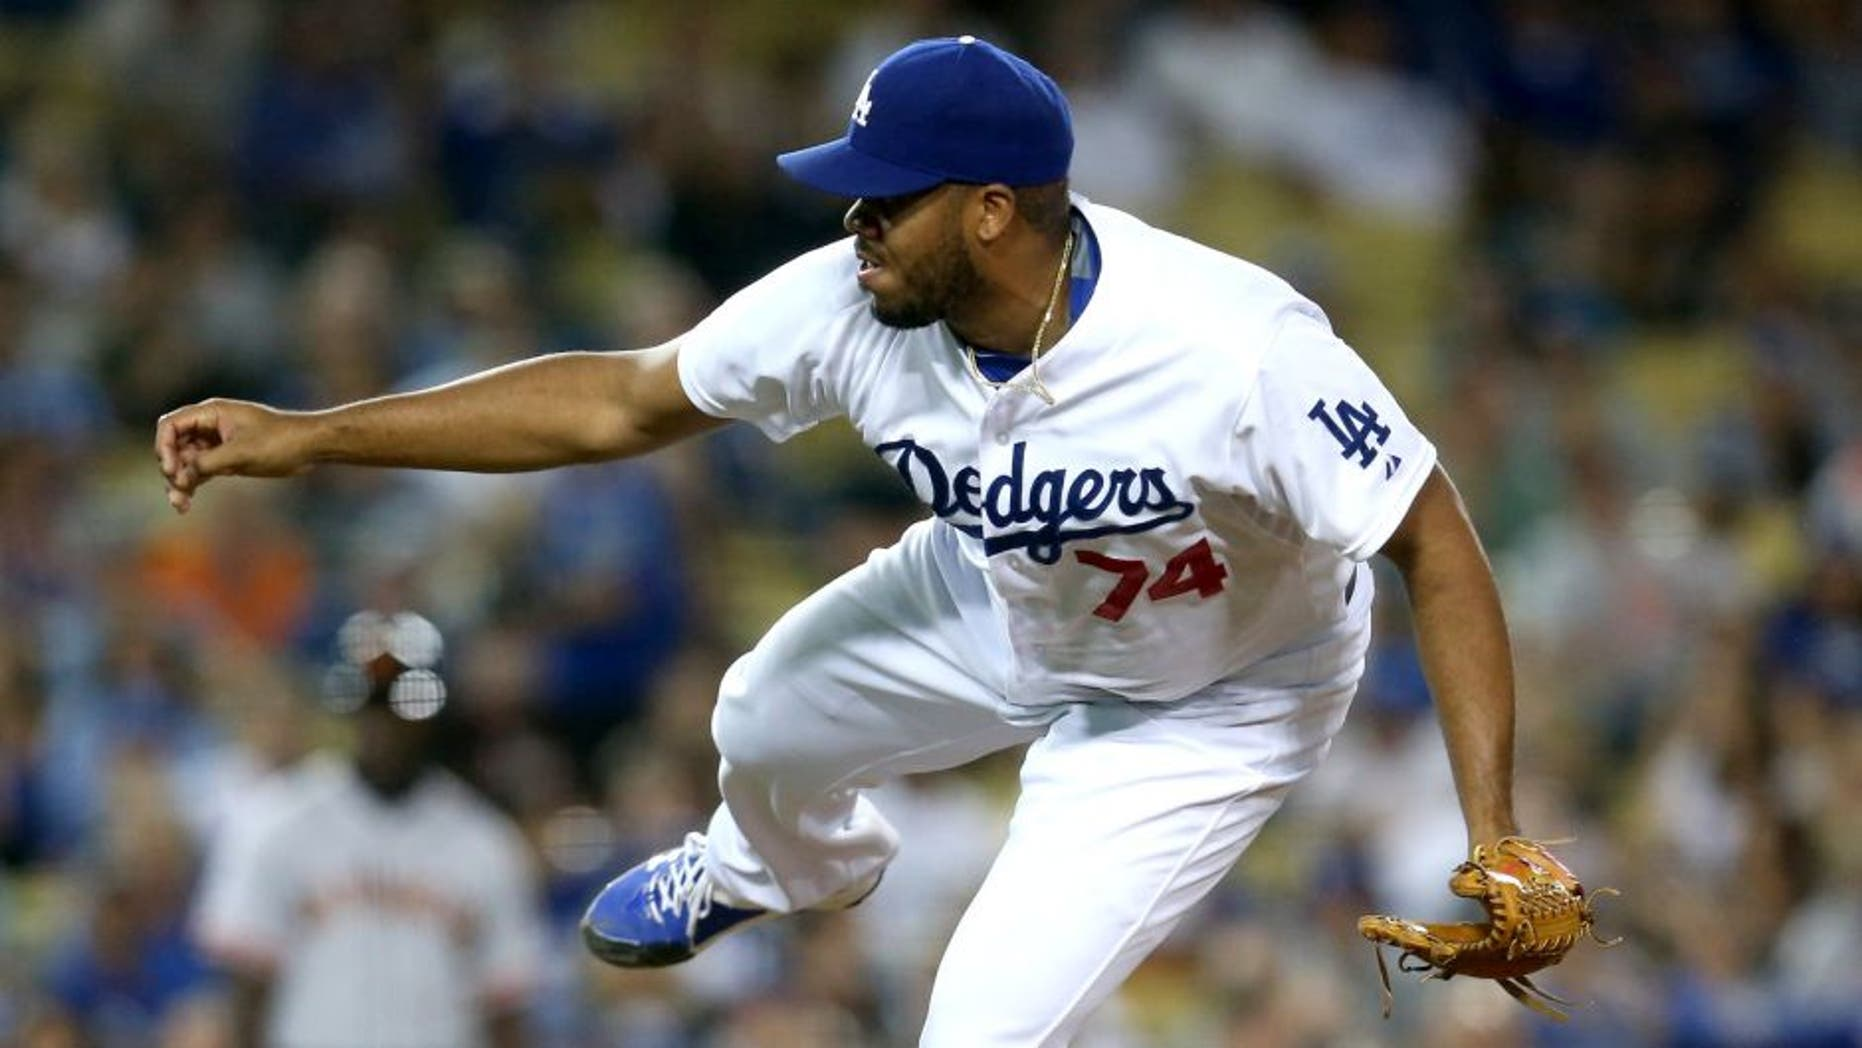 LOS ANGELES, CA - SEPTEMBER 01: Closer Kenley Jansen #74 of the Los Angeles Dodgers throws a pitch in the ninth inning on his way to getting the save against the San Francisco Giants at Dodger Stadium on September 1, 2015 in Los Angeles, California (Photo by Stephen Dunn/Getty Images)